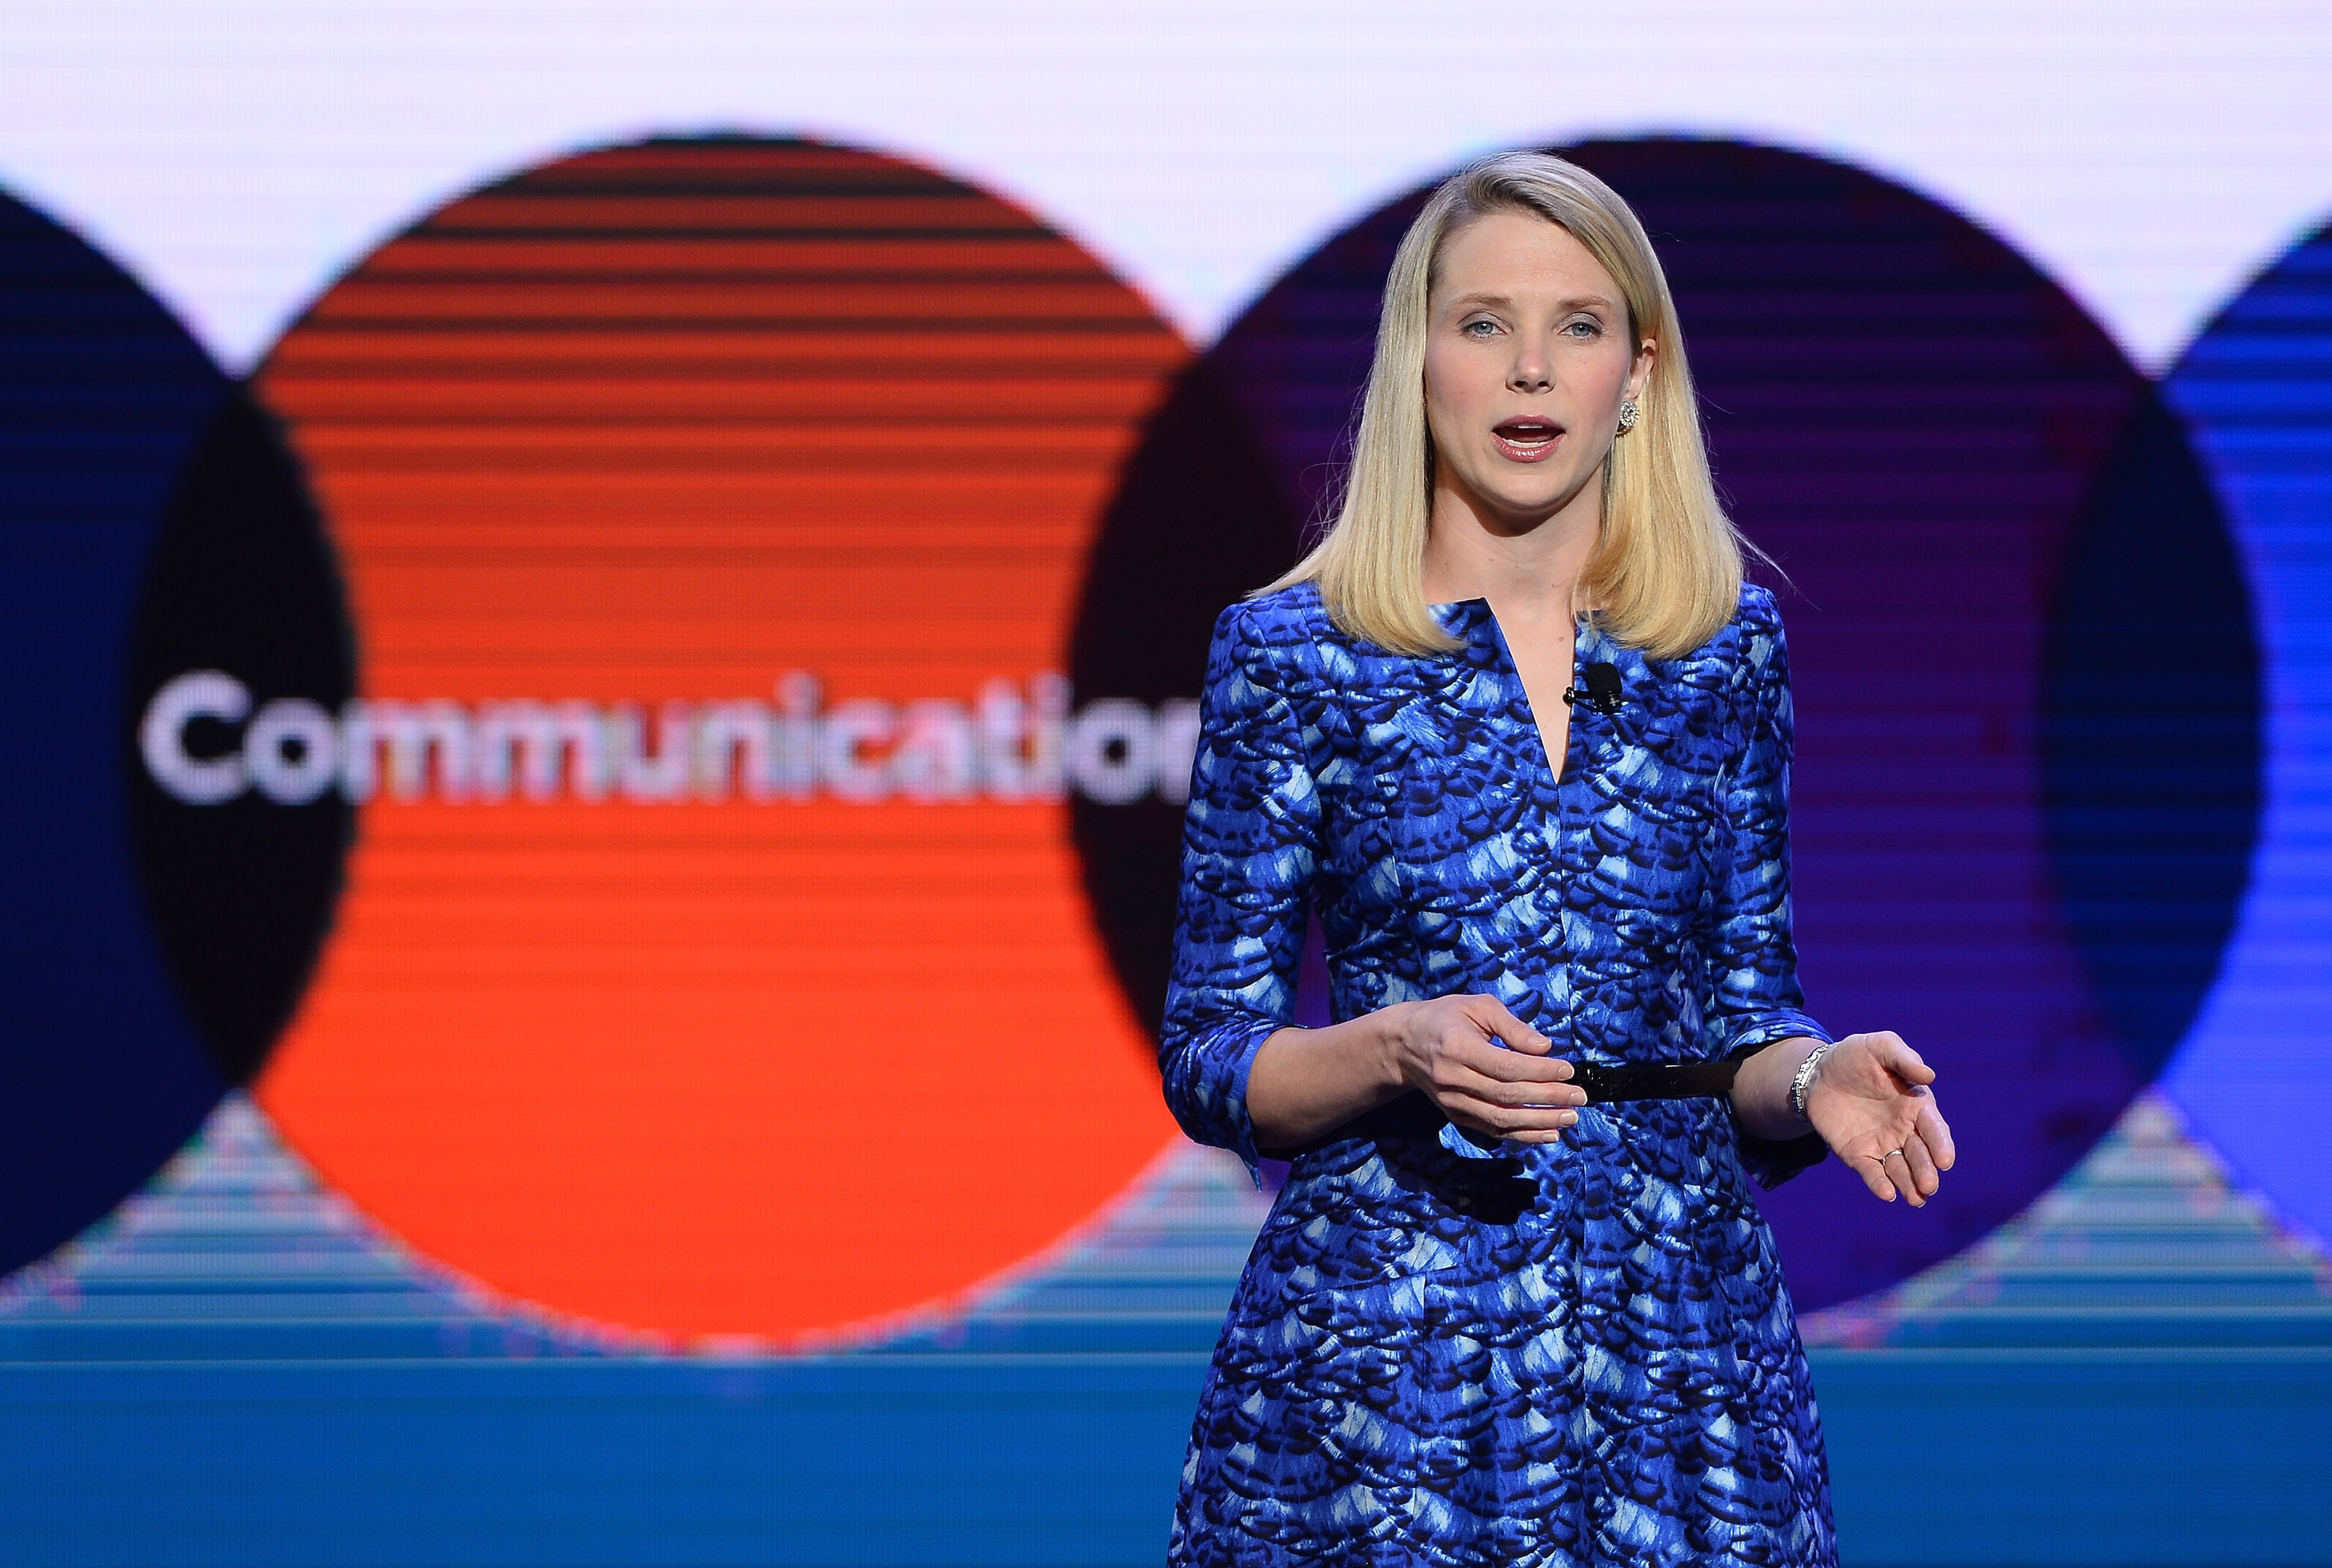 Yahoo President and CEO Marissa Mayer delivers the keynote address at the 2014 International CES, the world's largest annual consumer technology trade show,  on Tuesday in Las Vegas. Yahoo will spin off their stake in Alibaba into a company called SpinCo, in a move to save shareholders the tax burden of a direct sale of the stake.